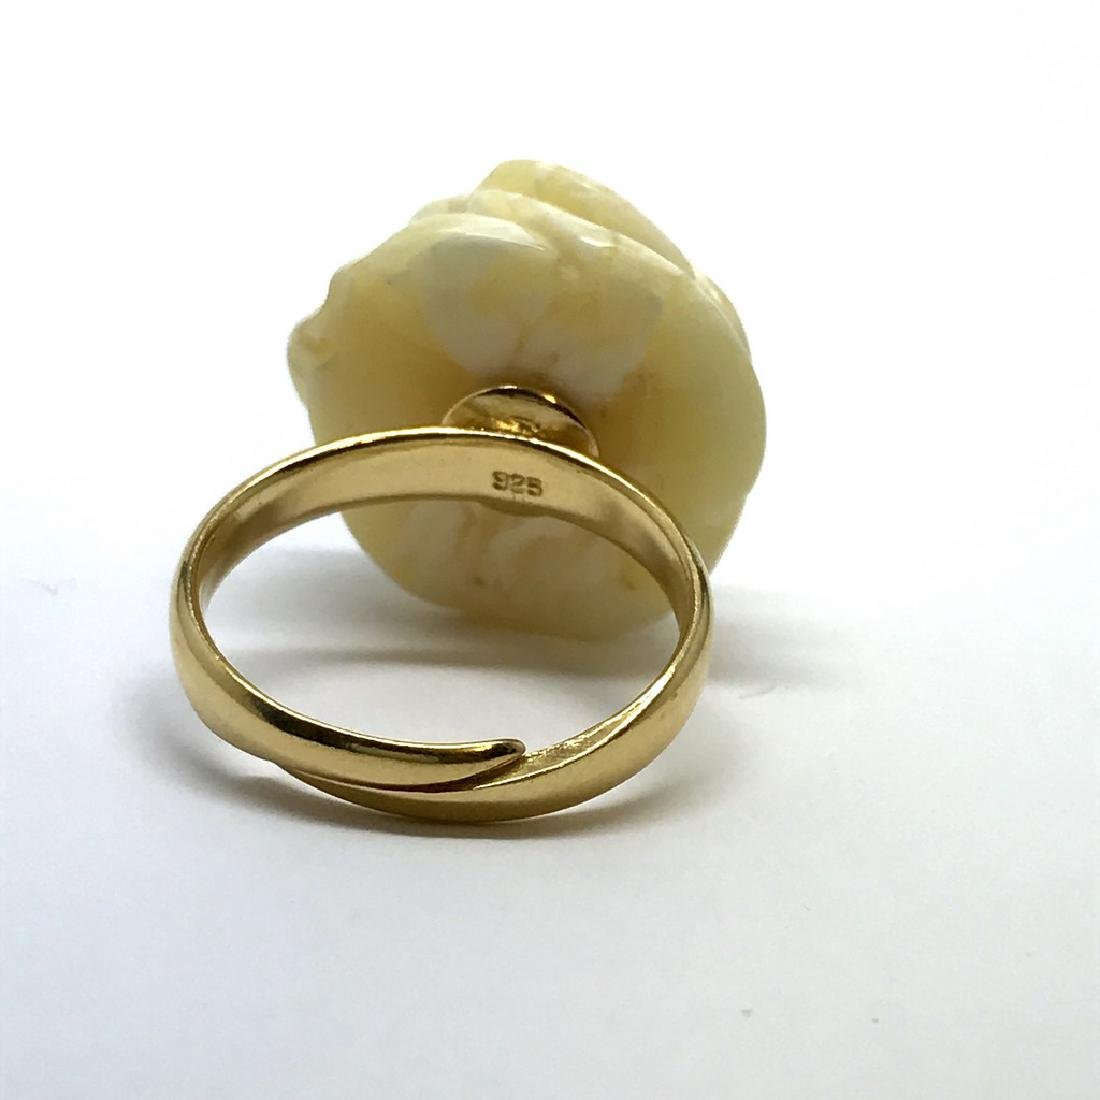 Old silver ring with carved white Baltic amber rose - 3